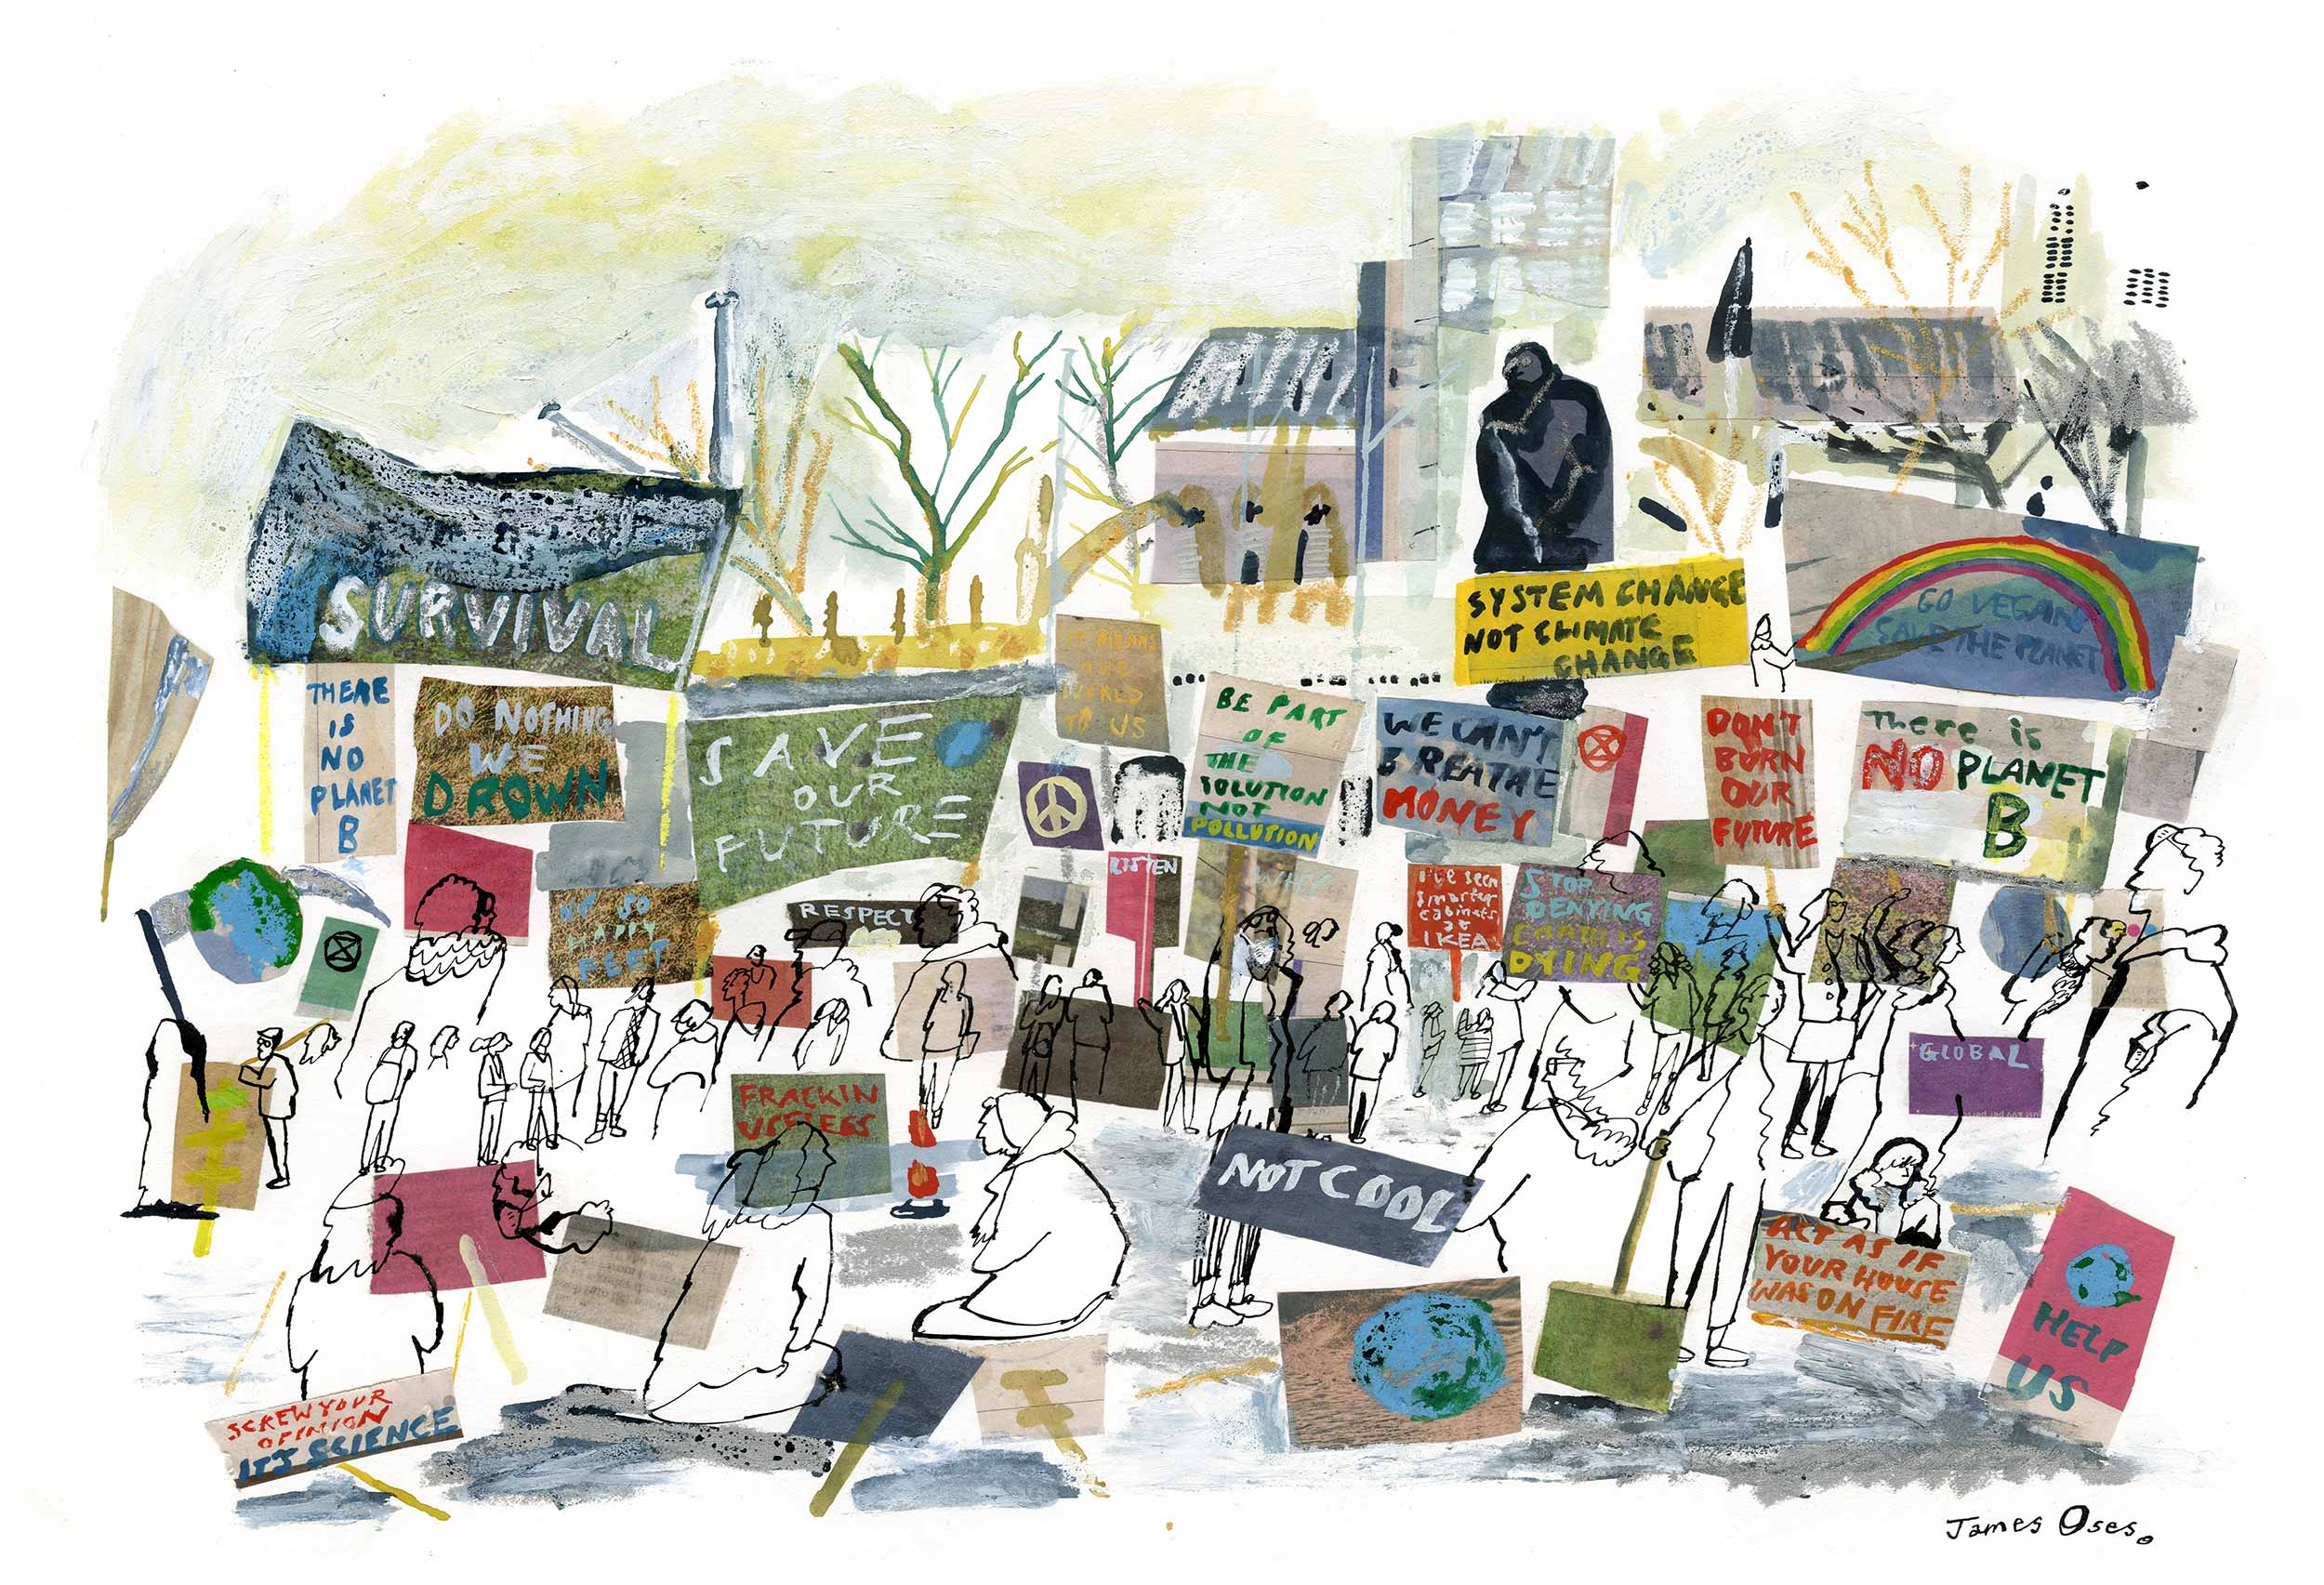 School strike for climate by James Oses